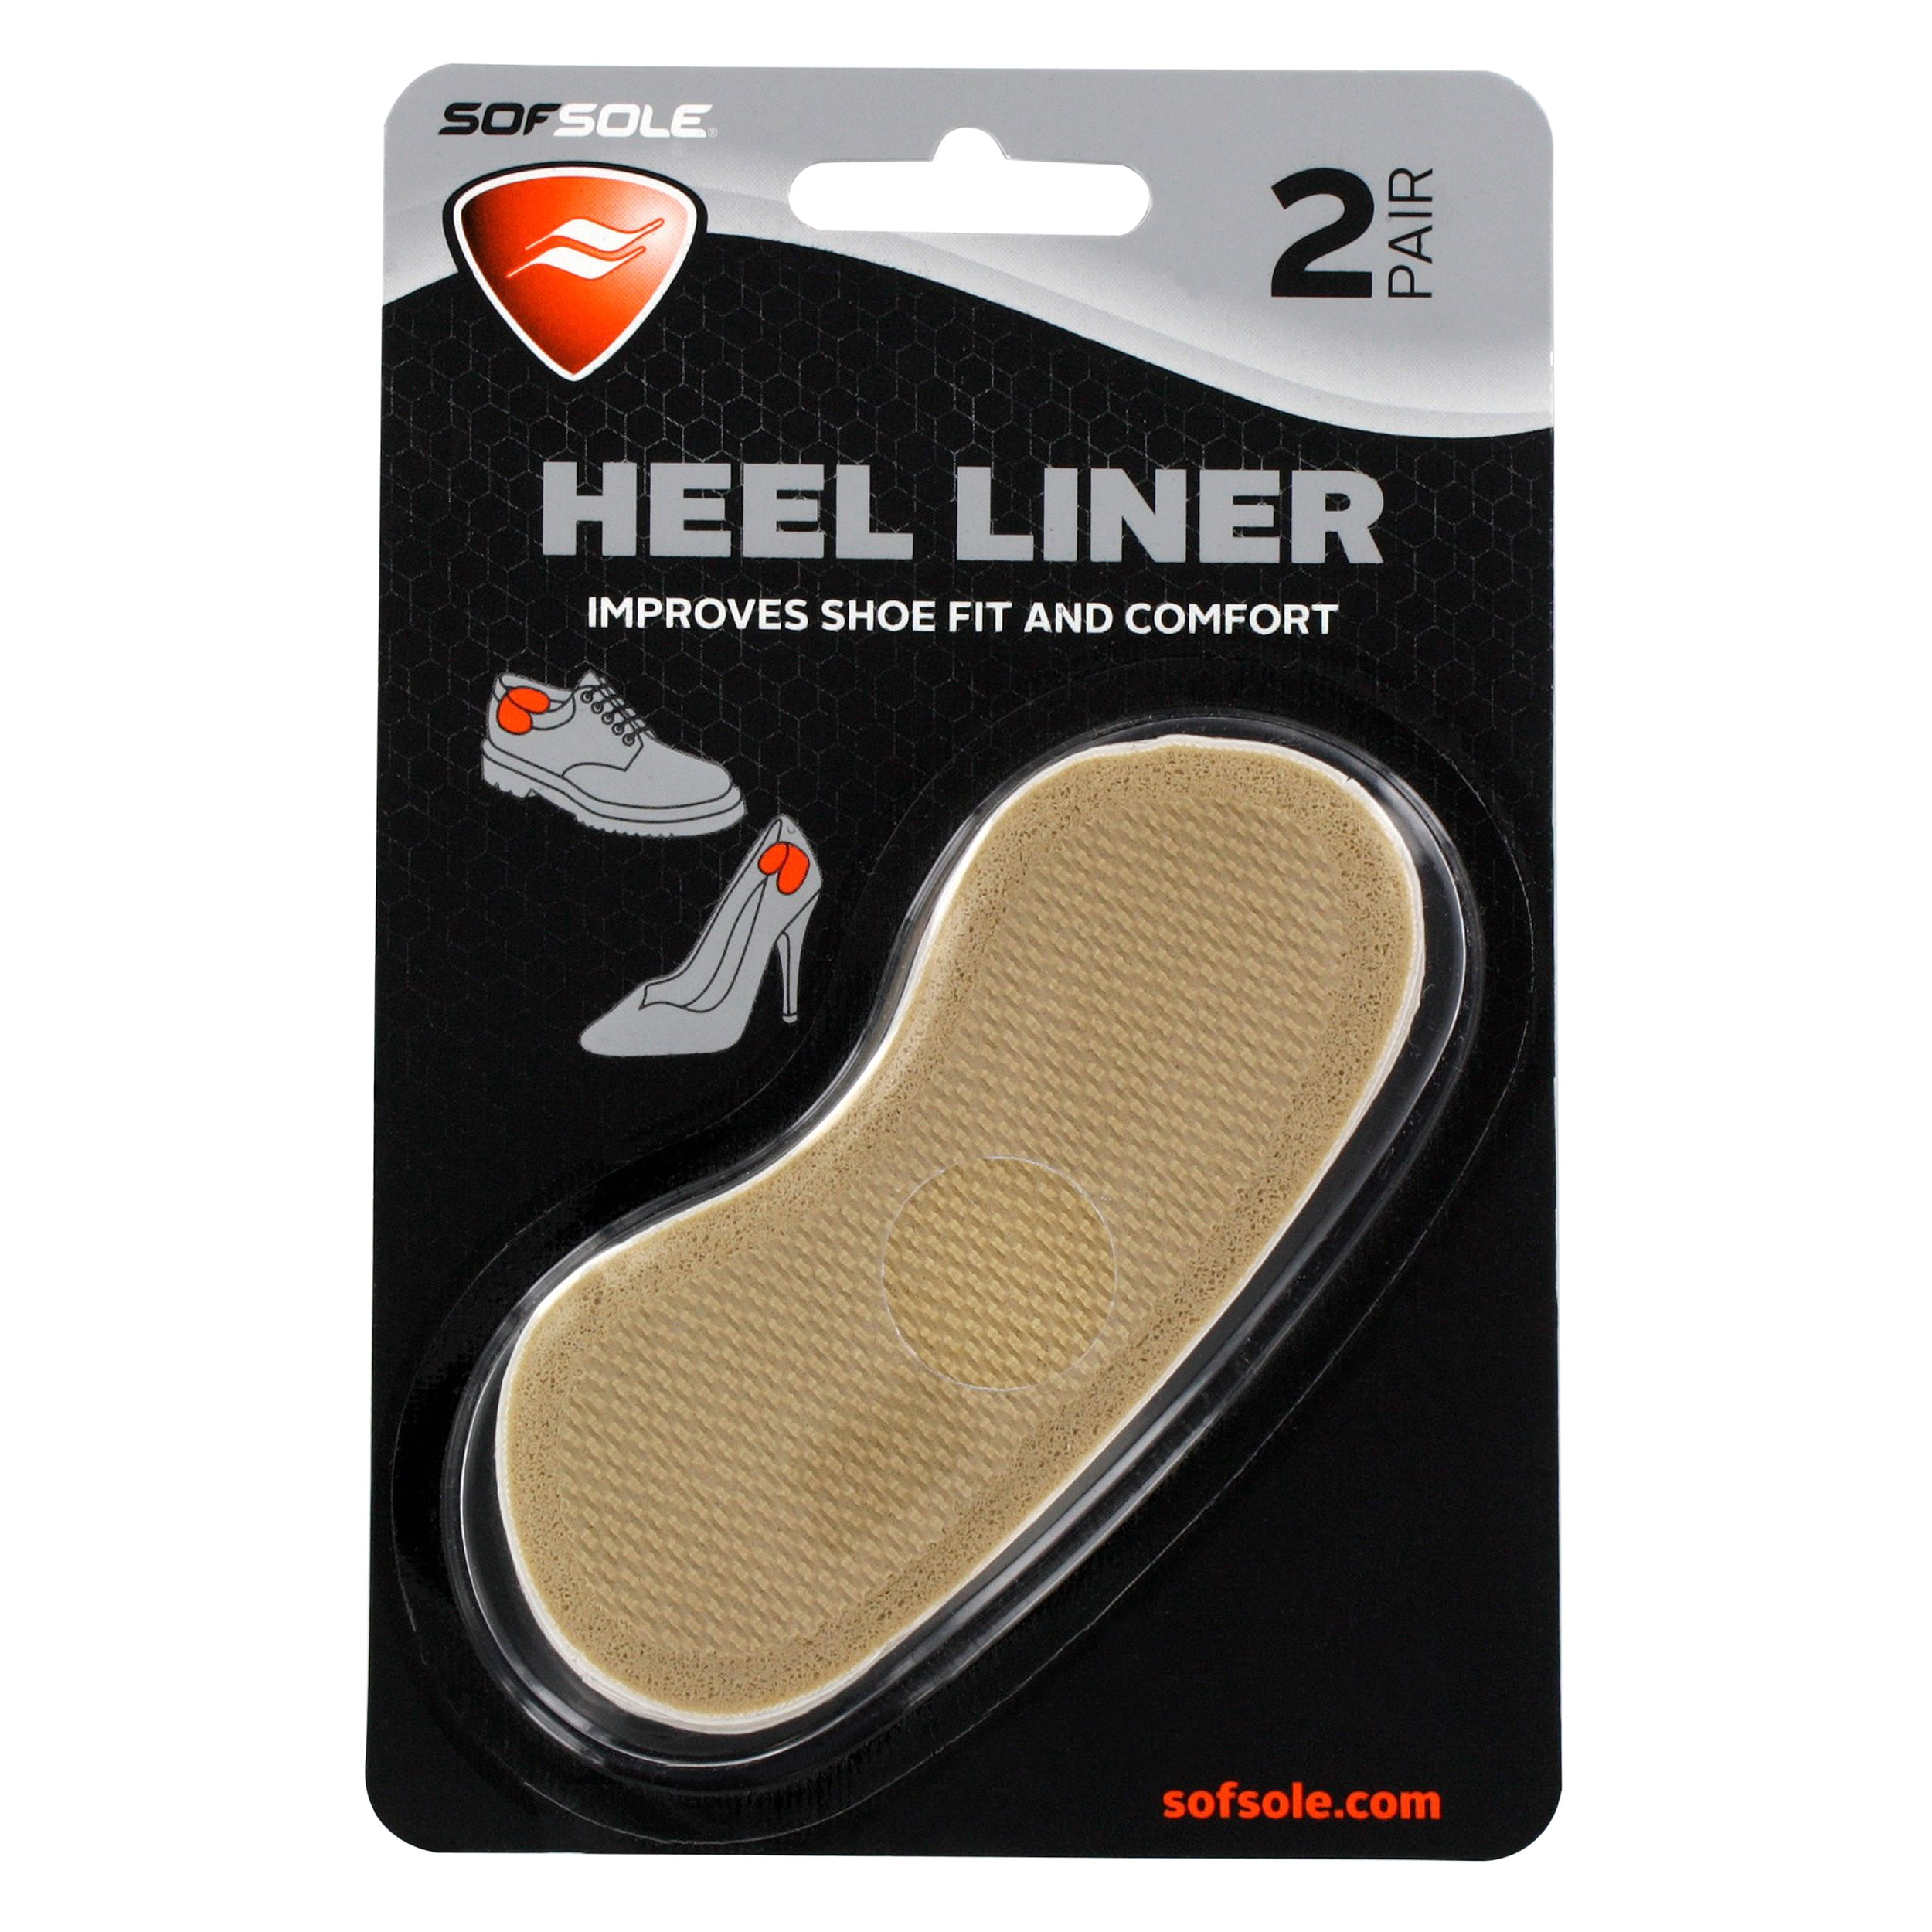 Sof Sole Heel Liner Cushions for Improved Shoe Fit and Comfort, 2 Pair by Sof Sole (Image #1)